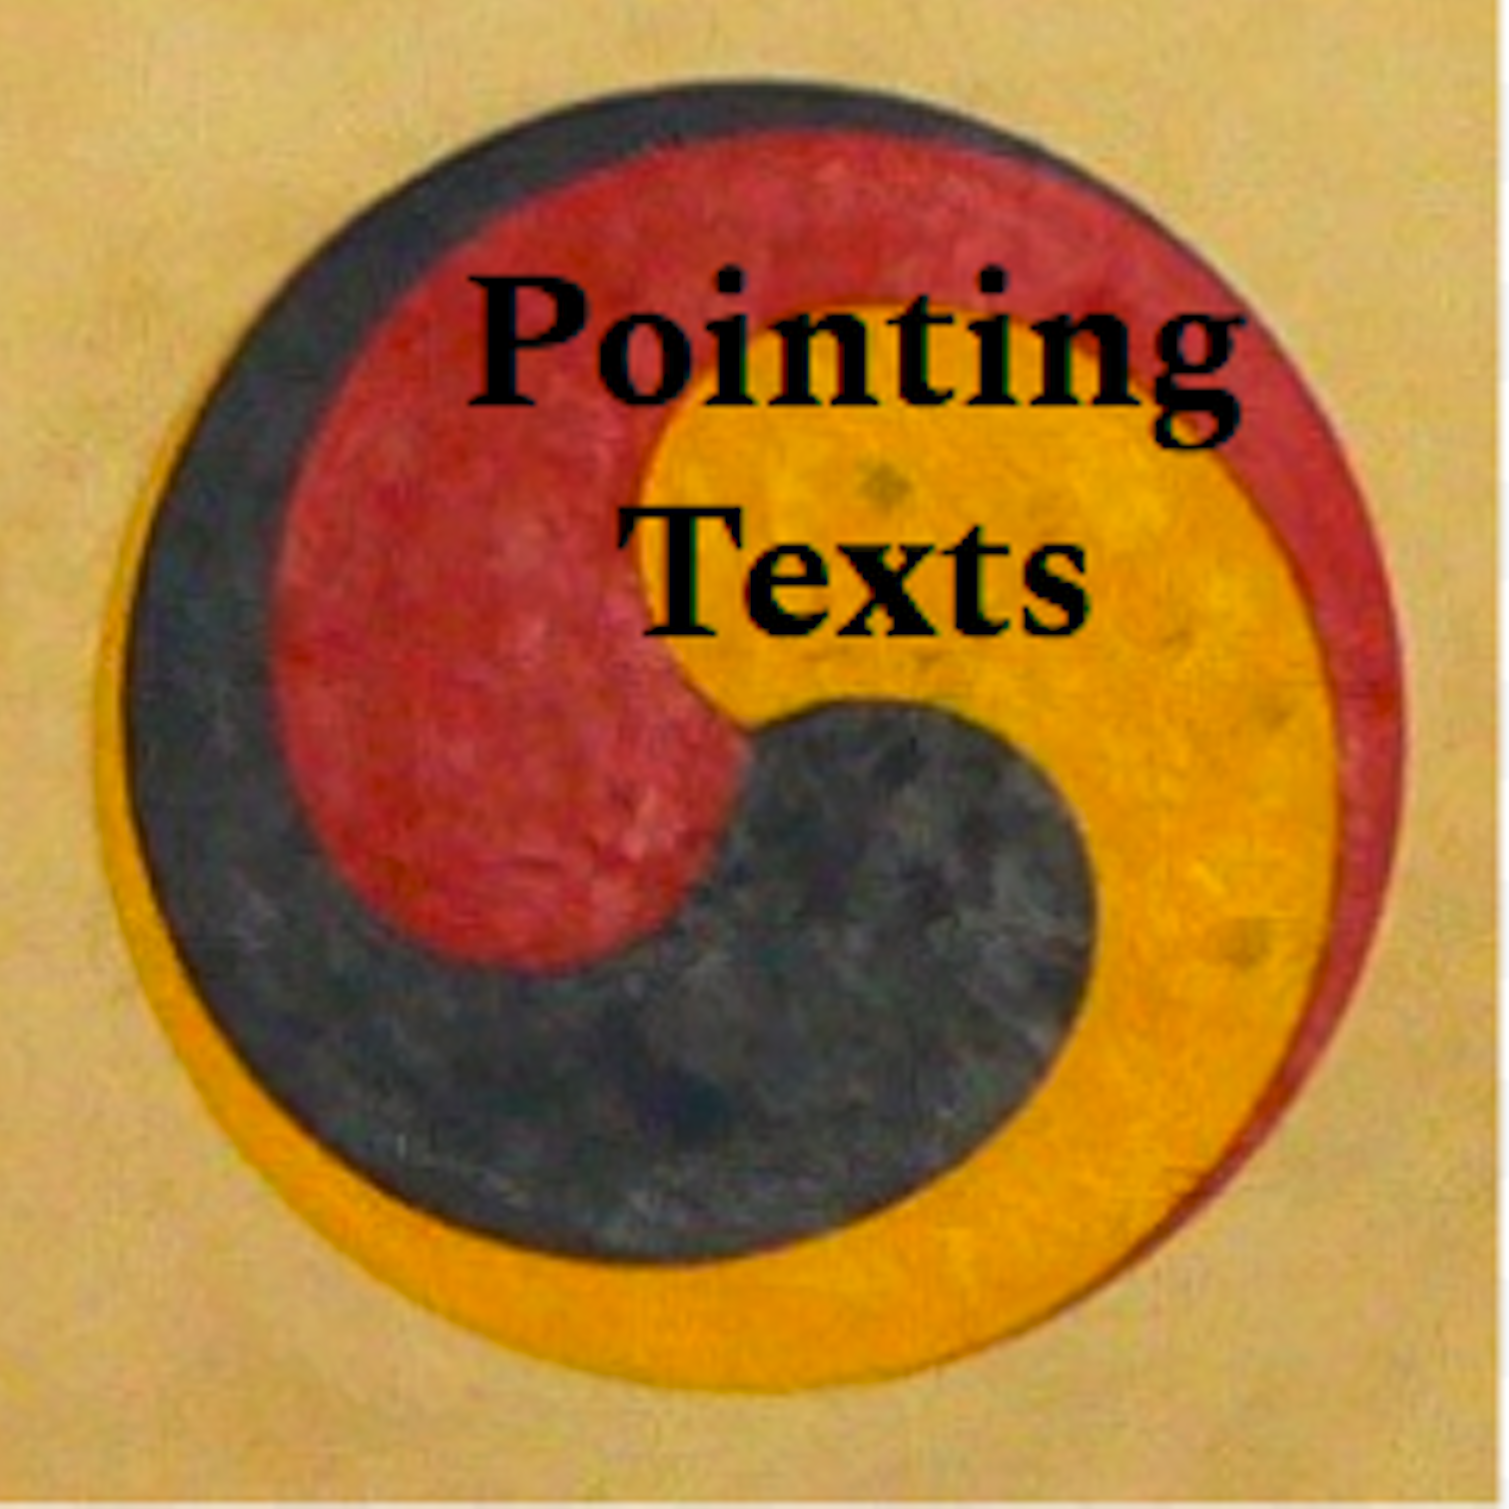 Pointing Texts